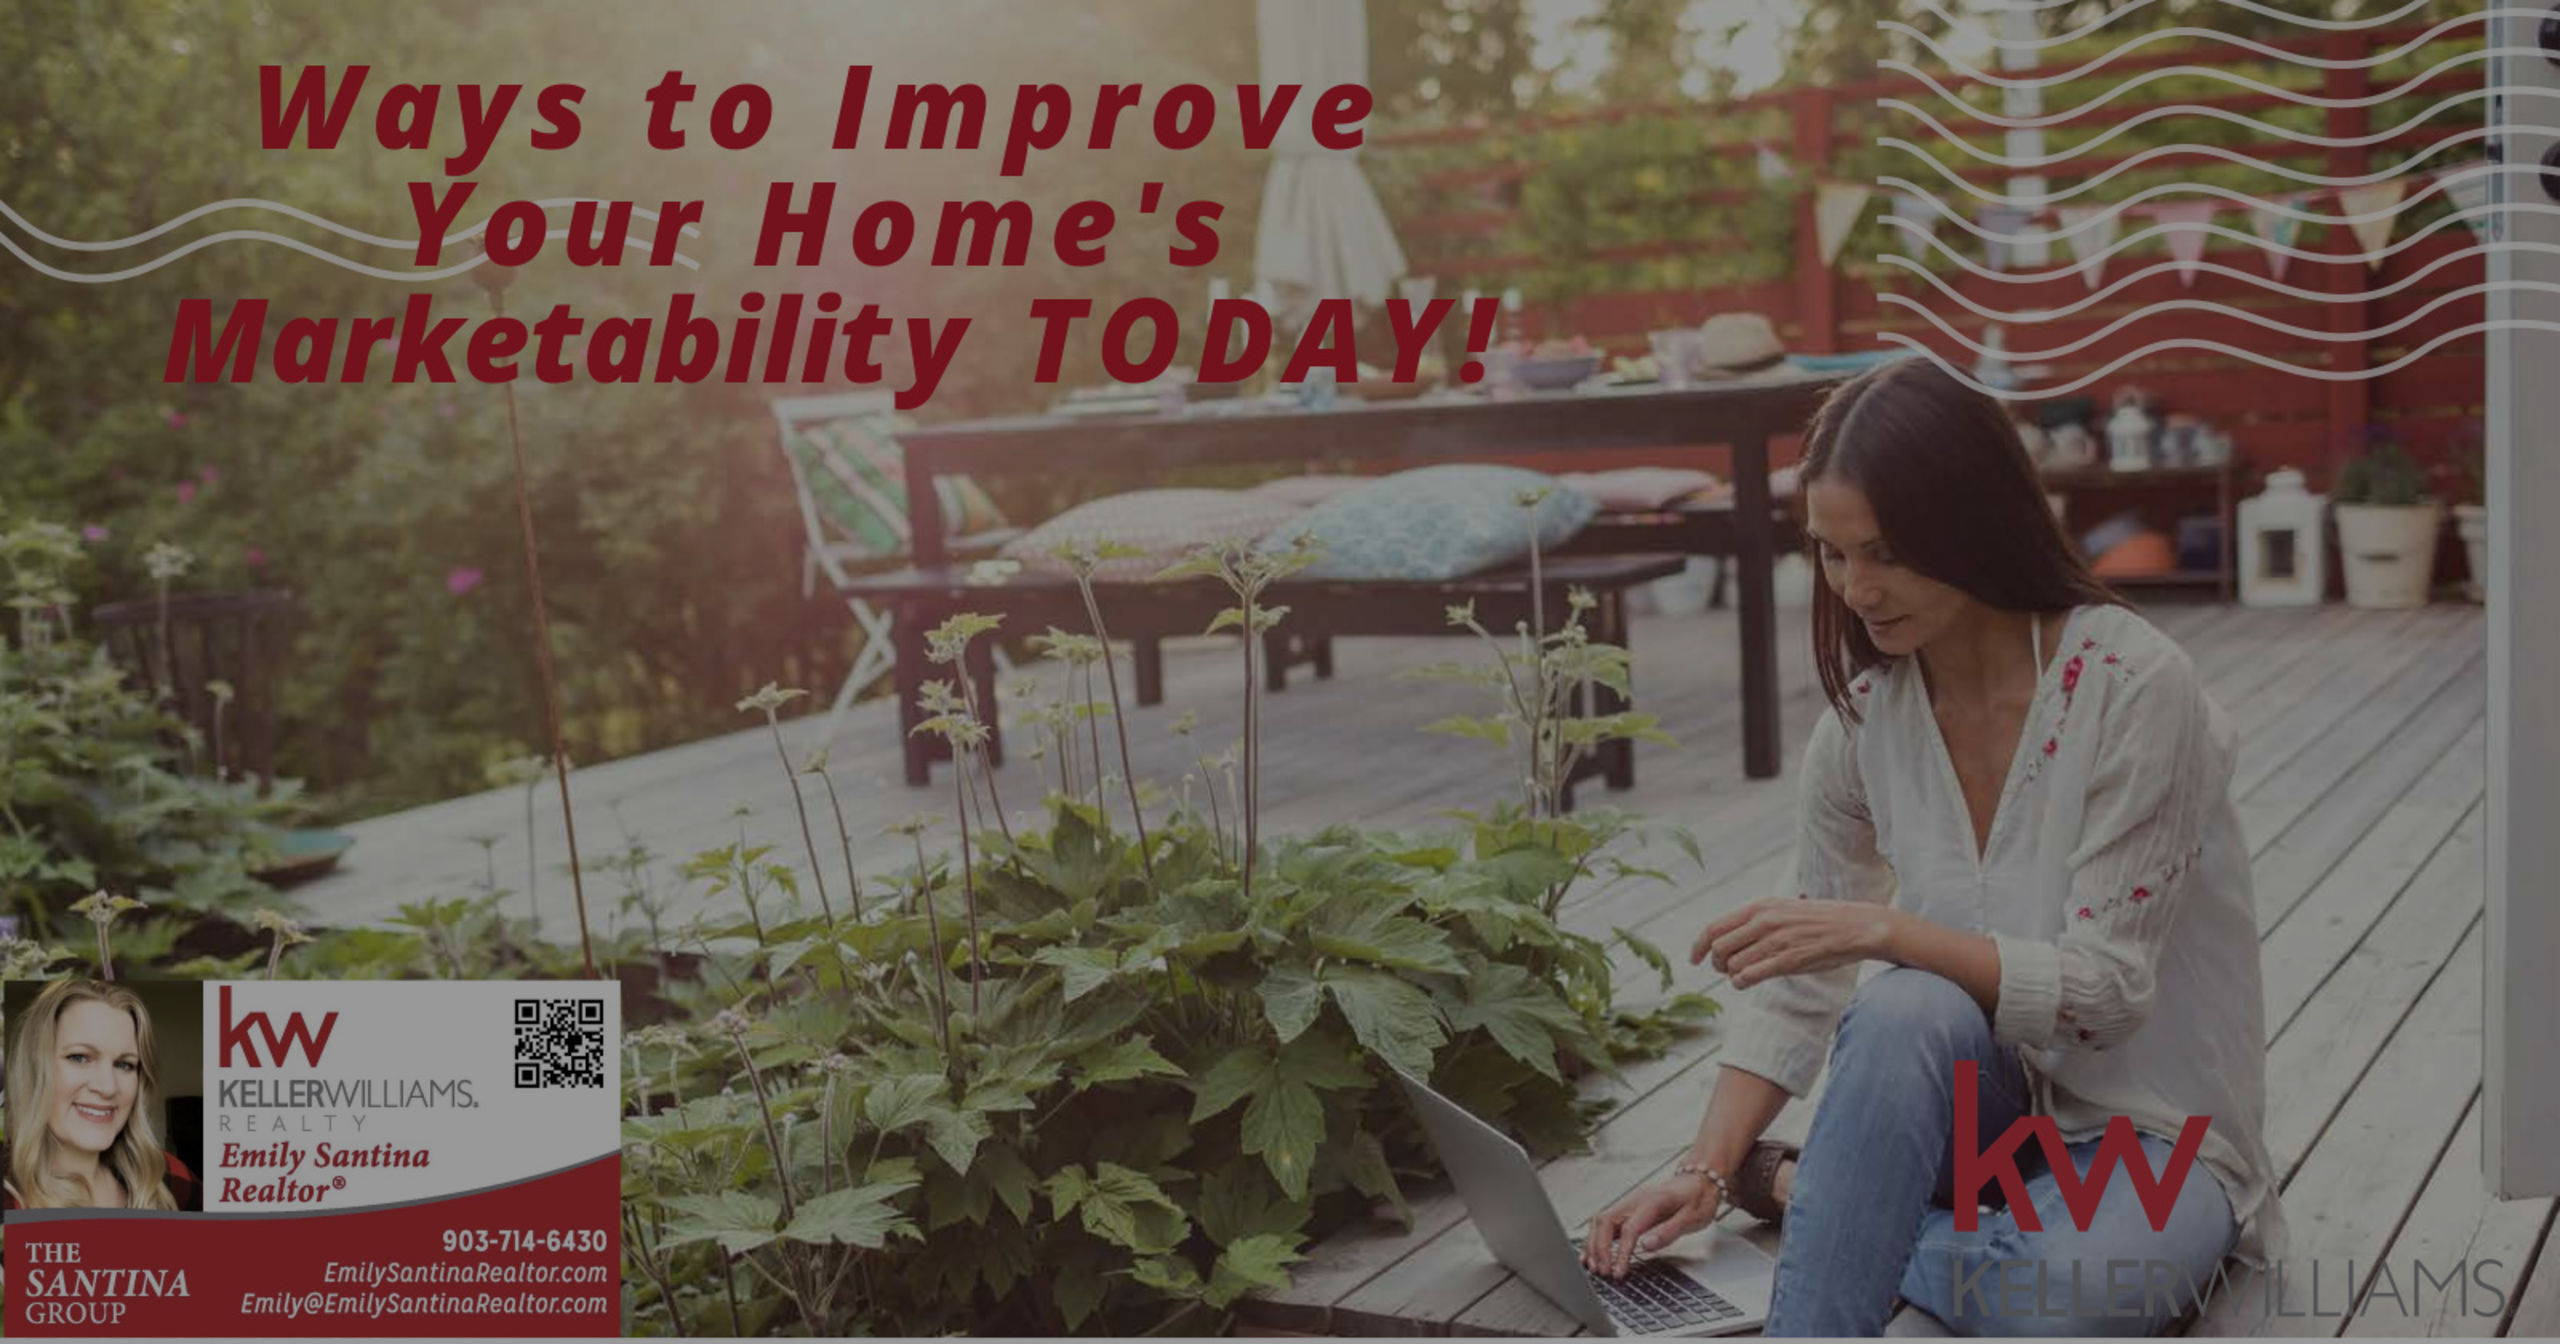 Ways to Improve Your Home's Marketablity TODAY